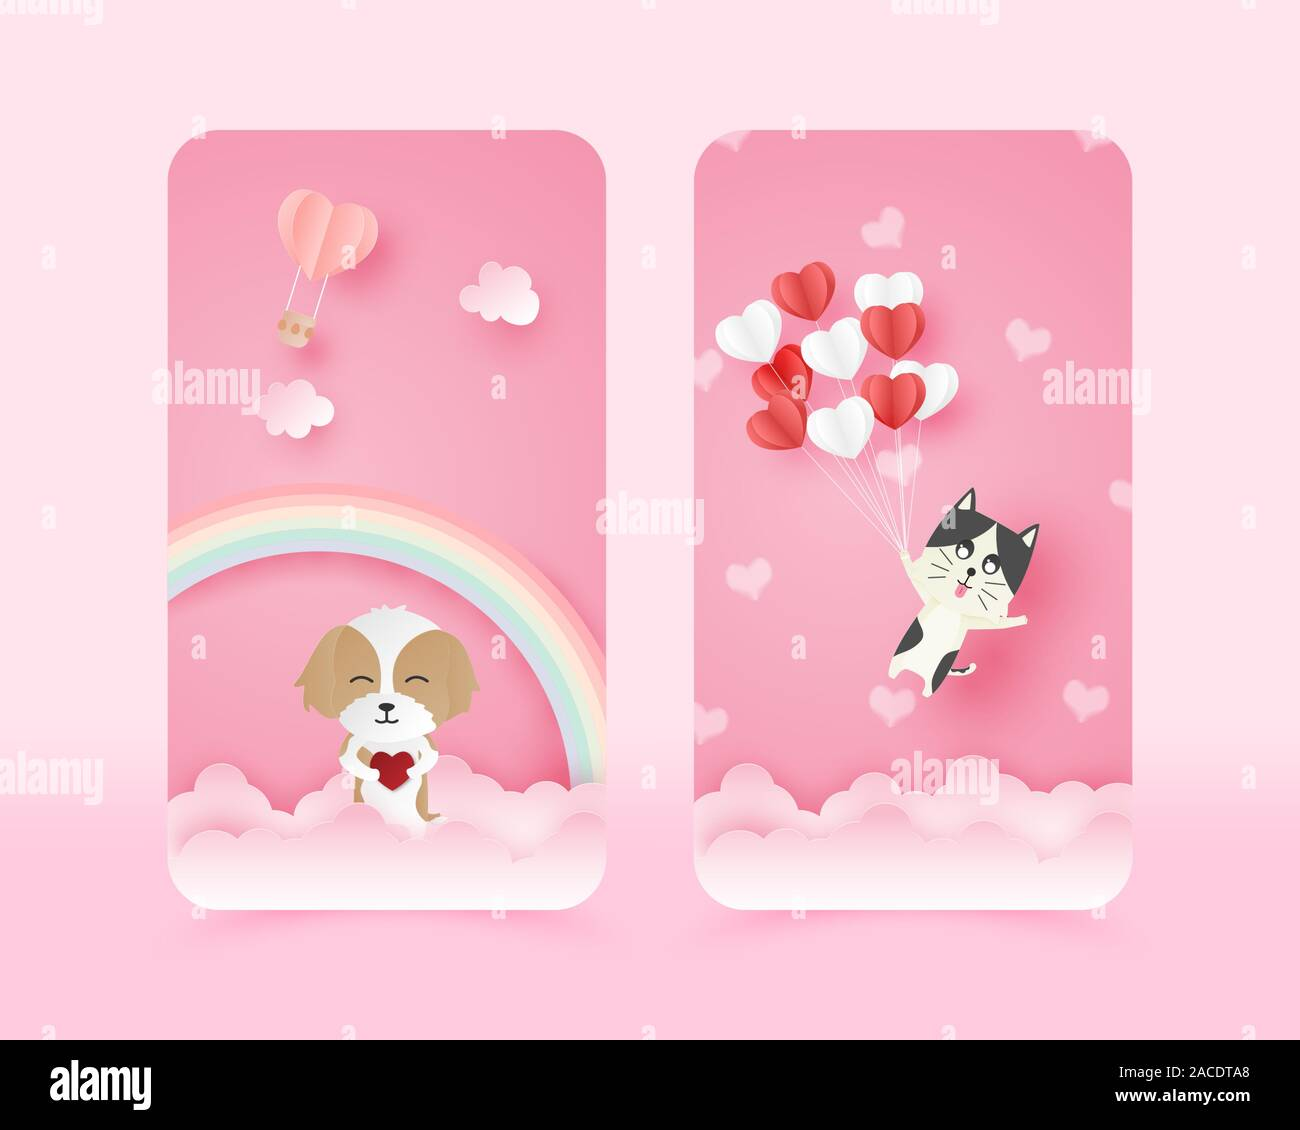 Illustration Of Love Cute Mobile Wallpaper In Paper Cut Style